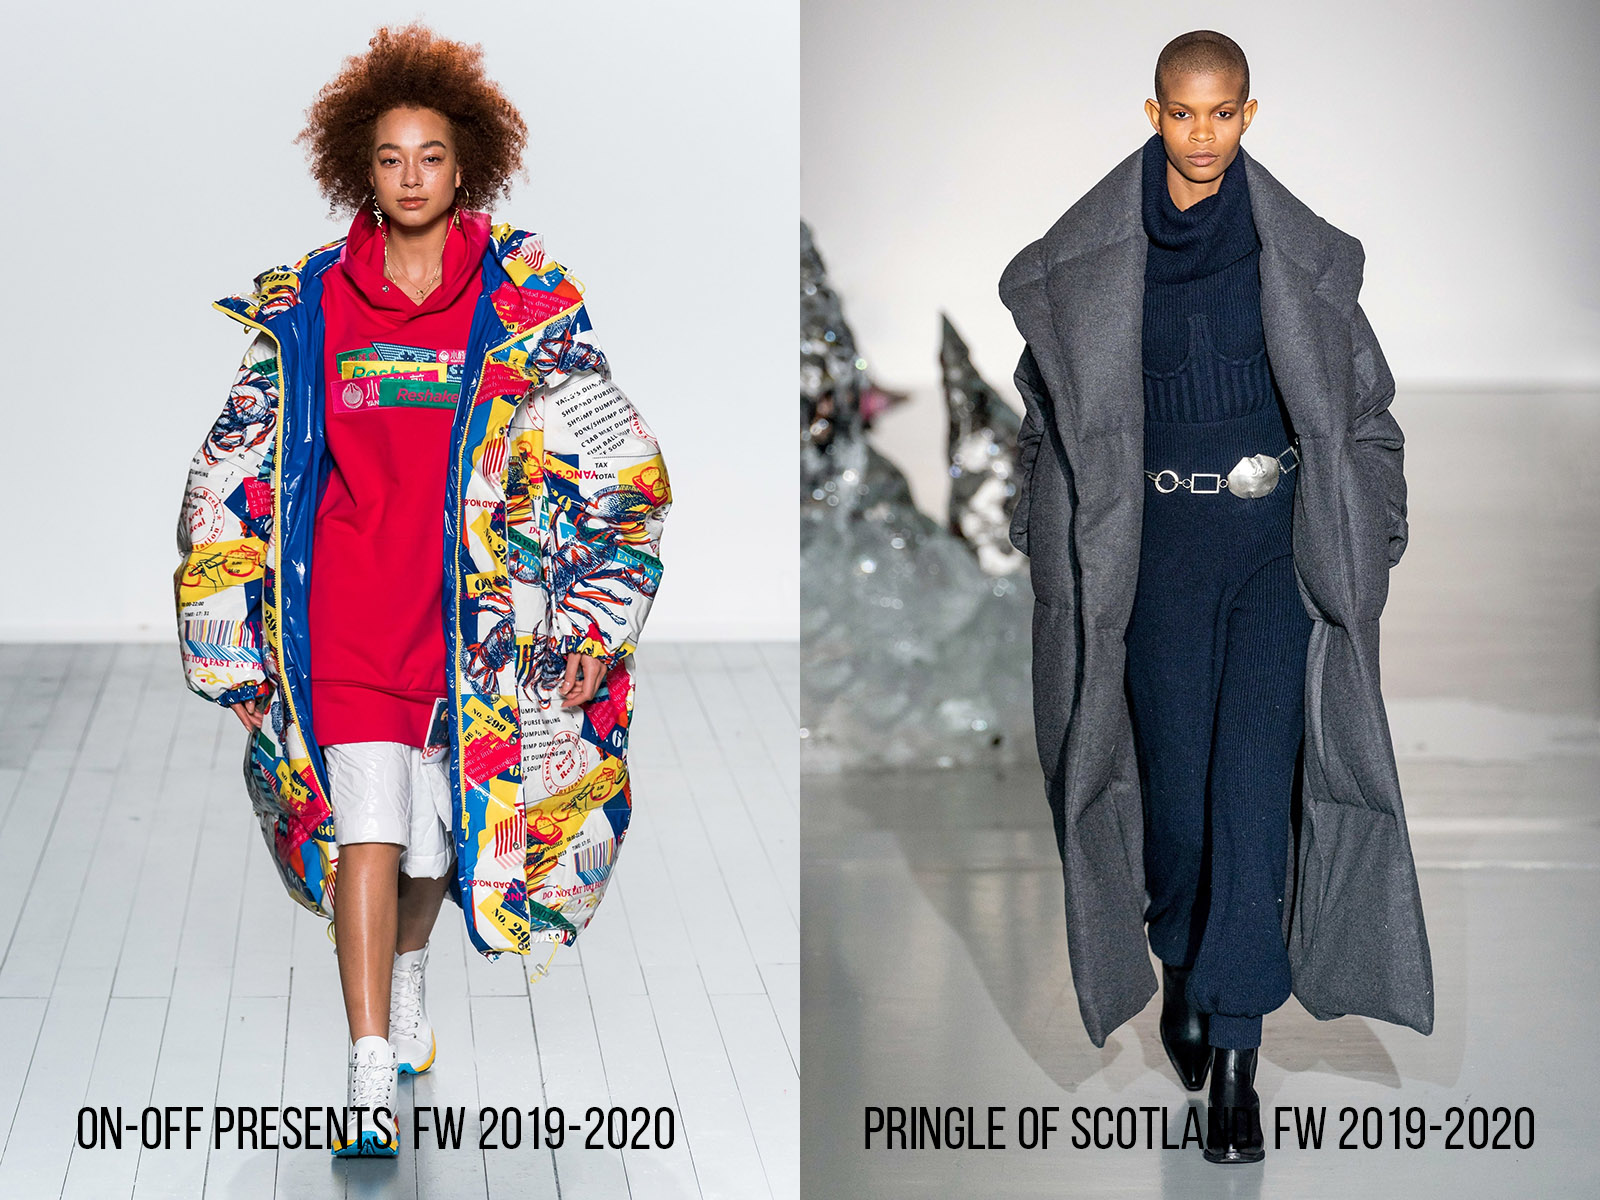 Trend - Puffer Dress Coat 2019.  ON-OFF Presents and Pringle of Scotland Fall-Winter 2019-2020